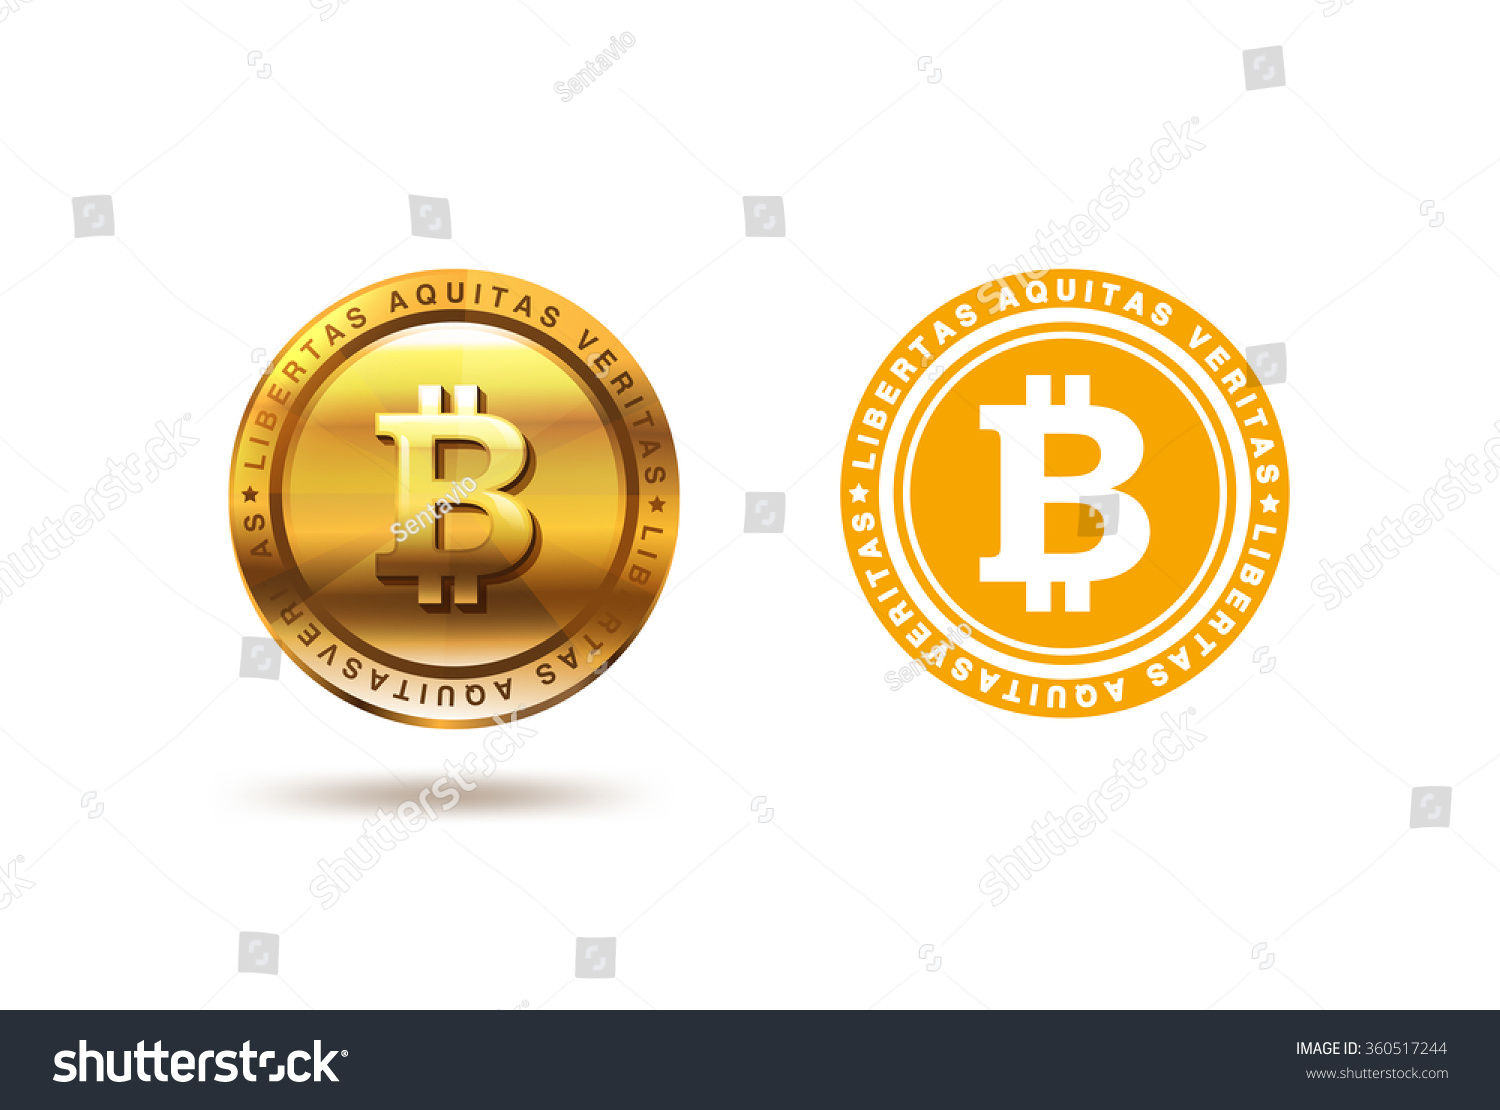 Gold Bitcoin Coin Logo Design Vector Stock Vector ...